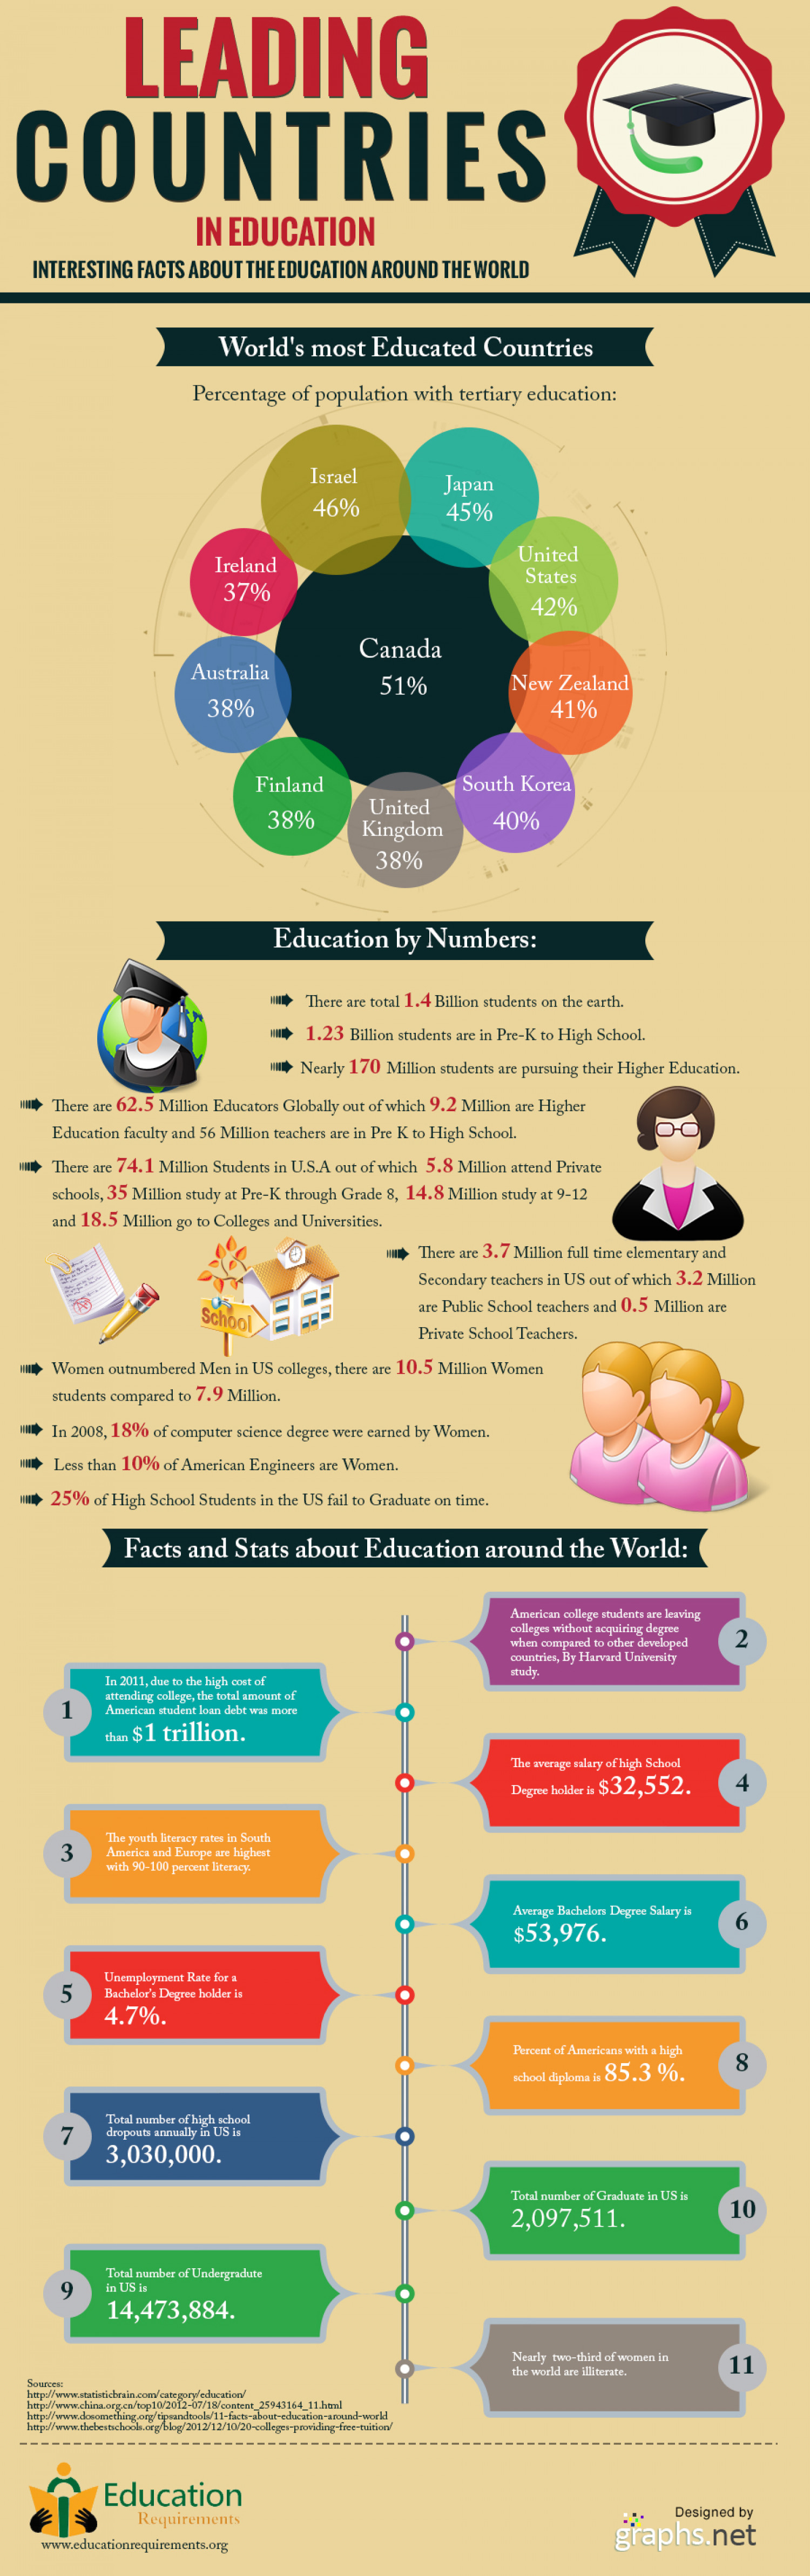 10 Top Countries That Leads The World In Education Infographic